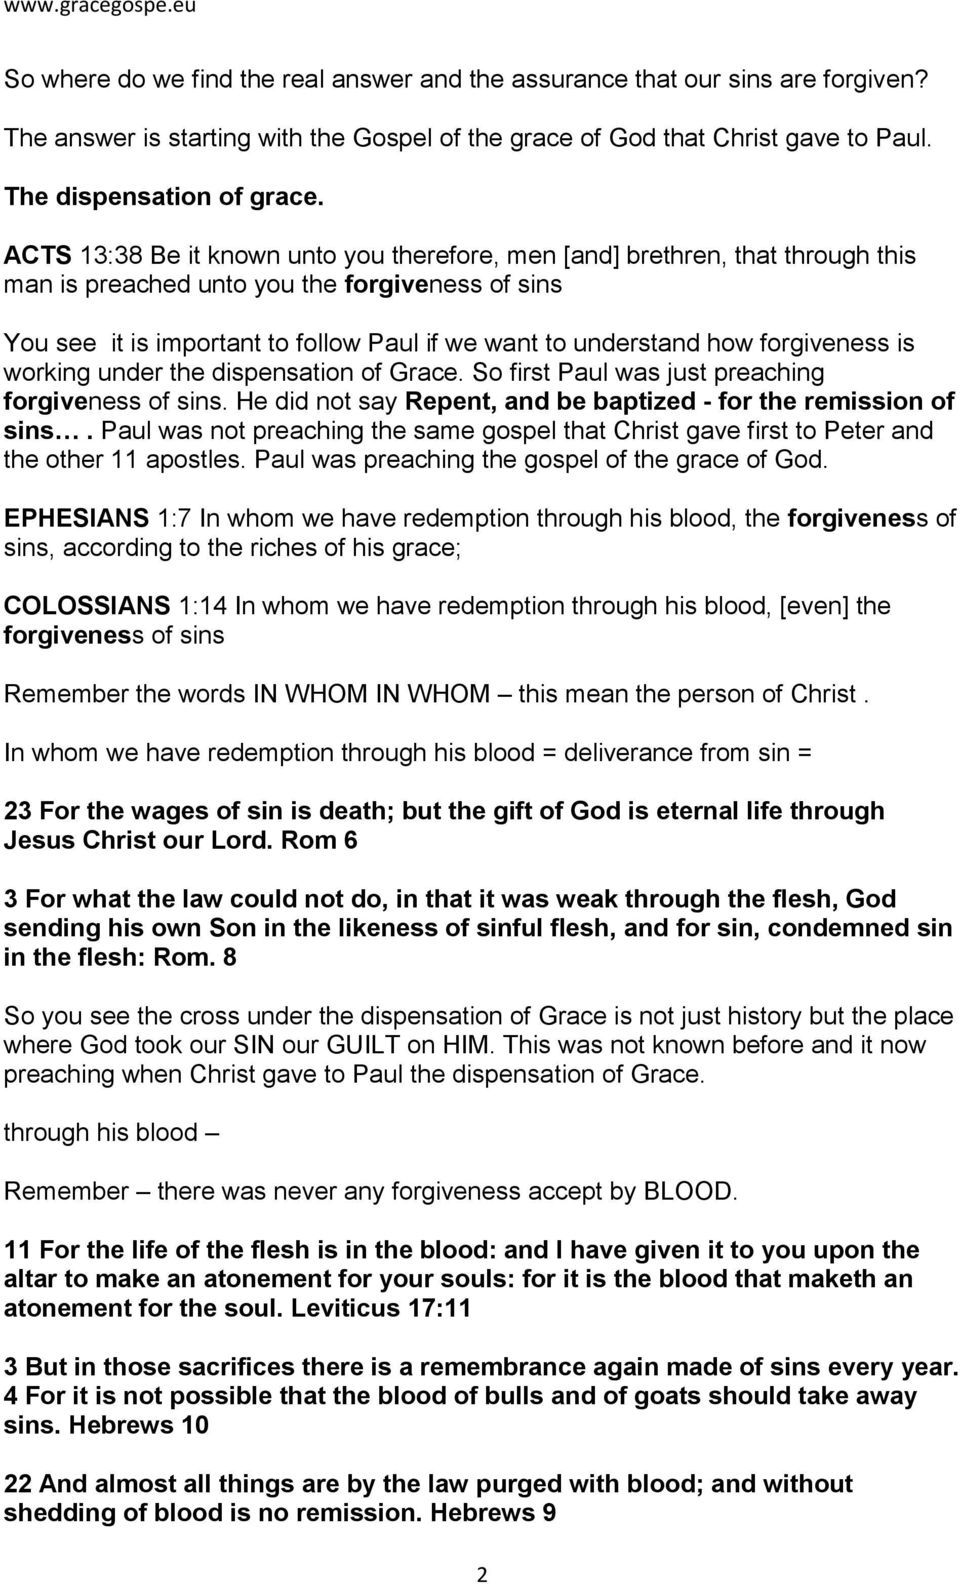 forgiveness is working under the dispensation of Grace. So first Paul was just preaching forgiveness of sins. He did not say Repent, and be baptized - for the remission of sins.